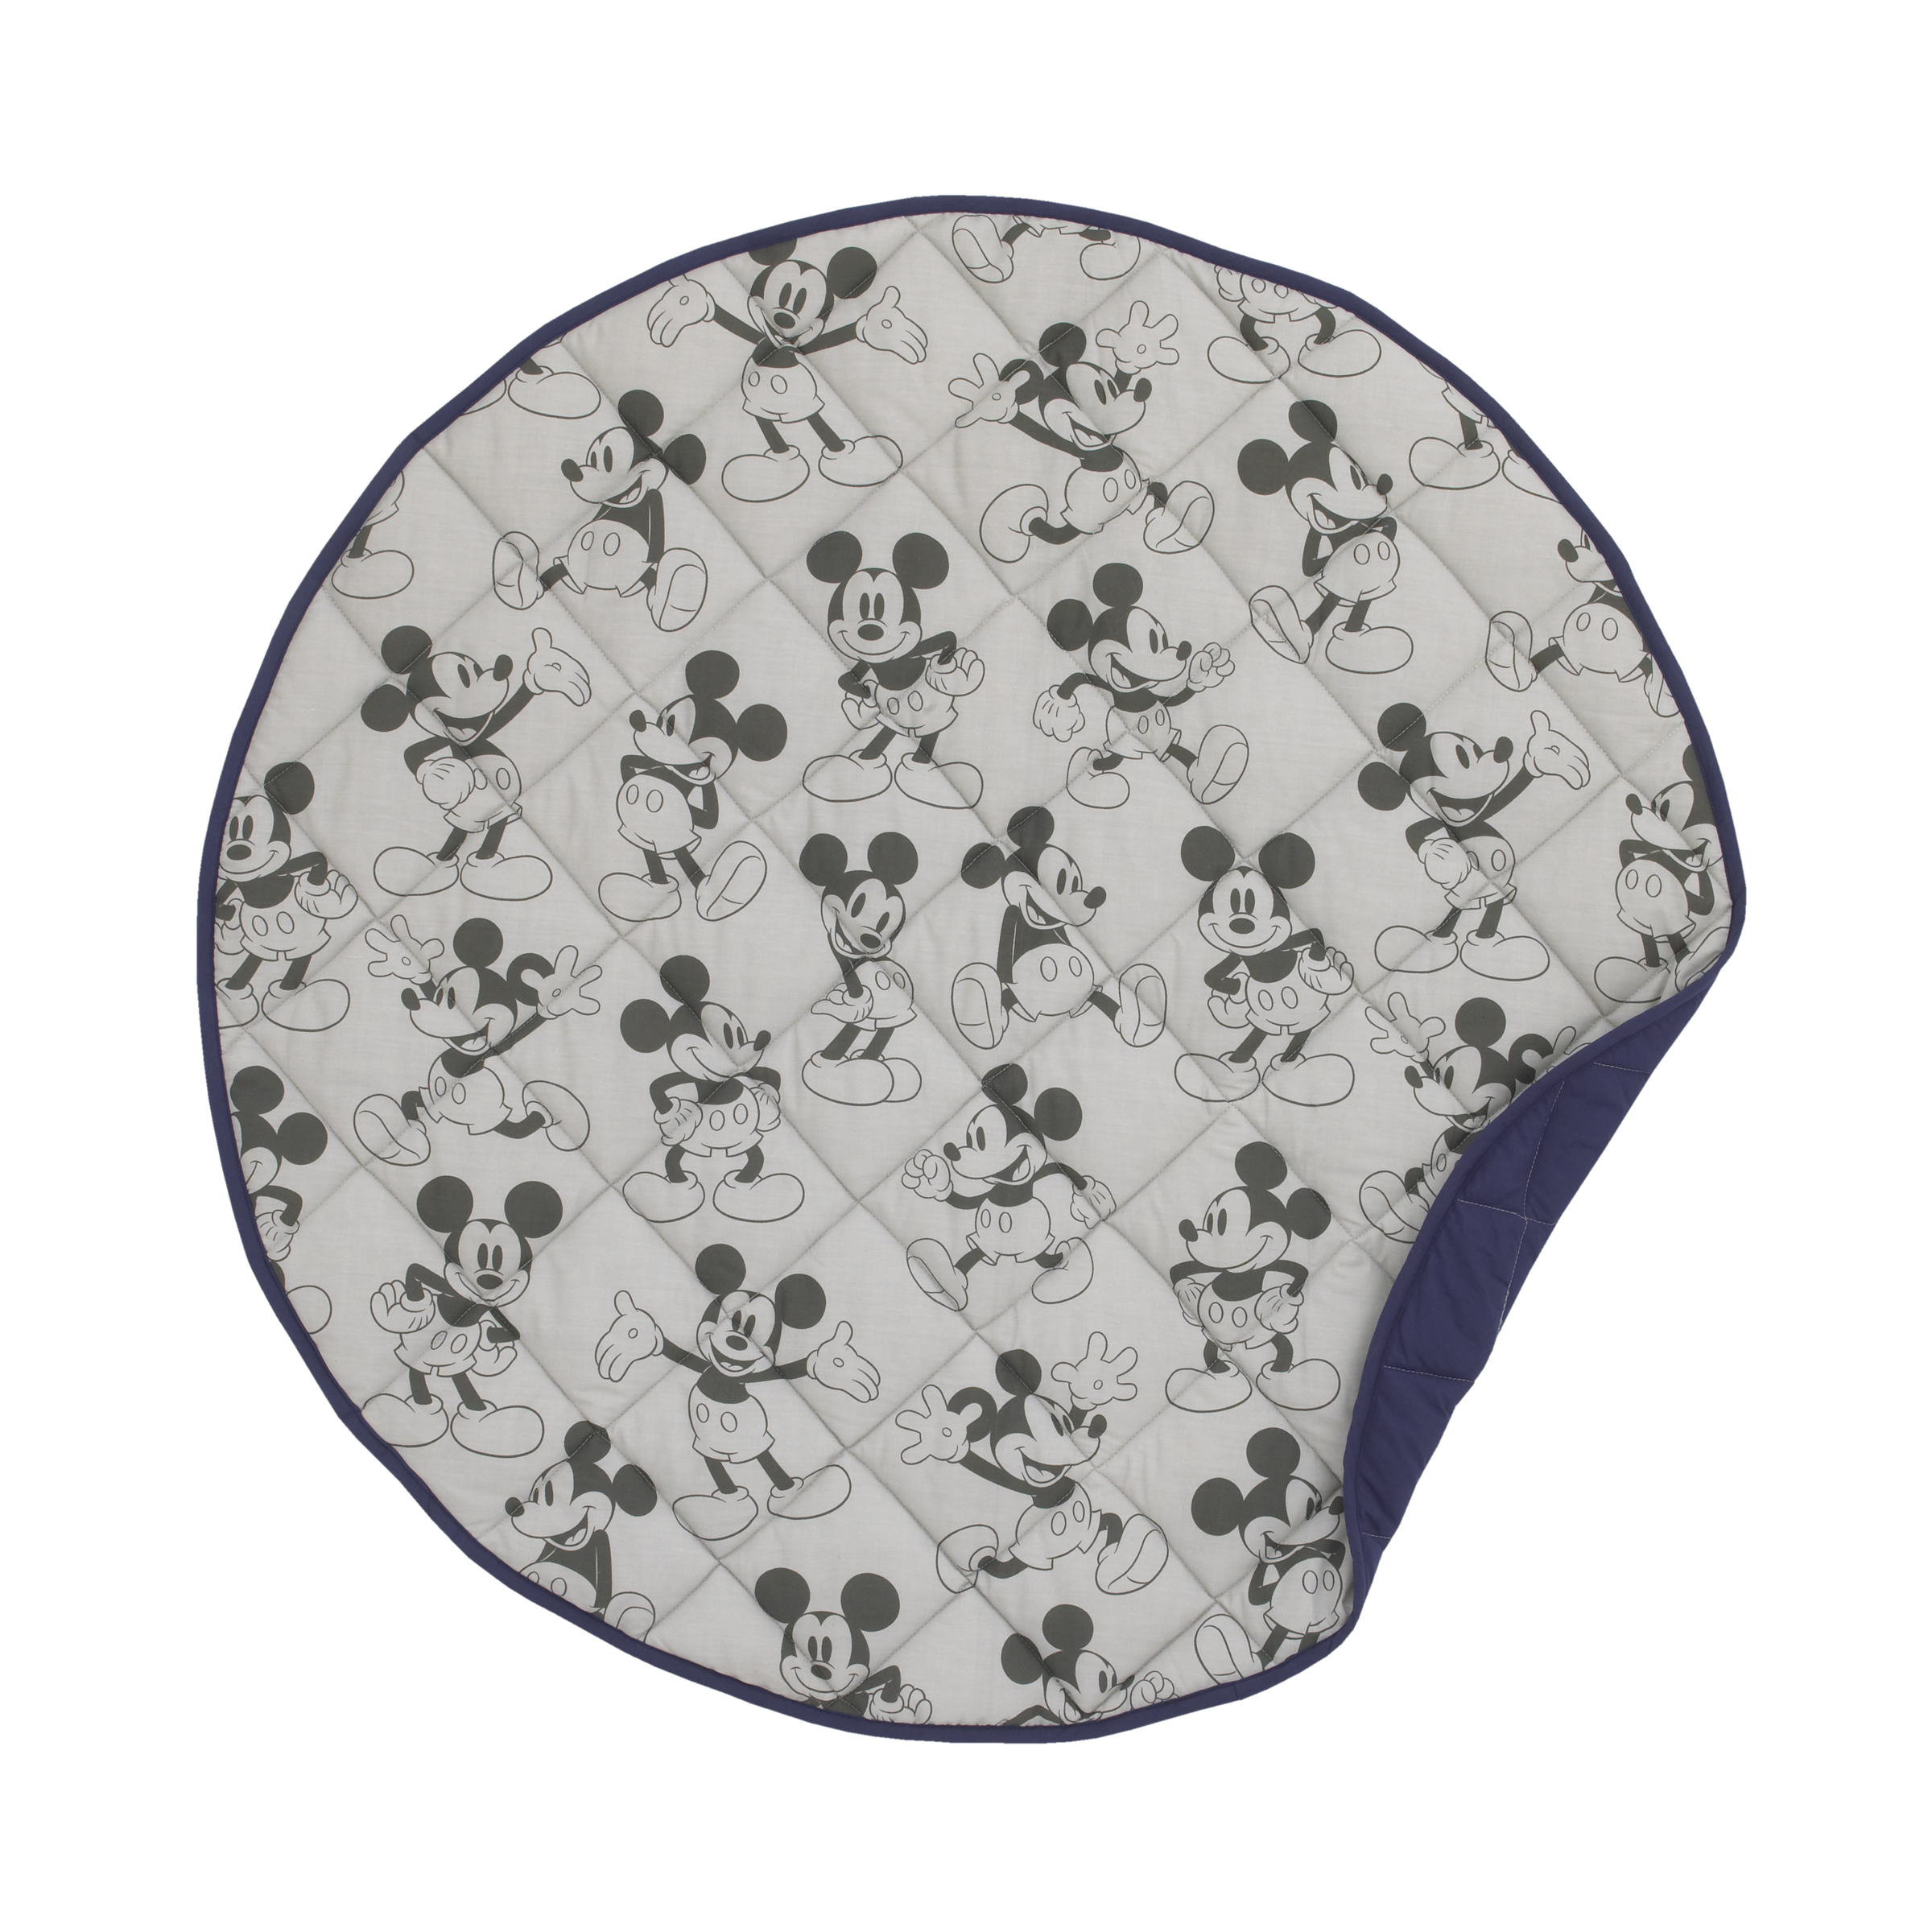 "Disney Mickey Mouse 36"" Round Quilted Tummy Time Playmat, Grey, Navy, Dark Charcoal"